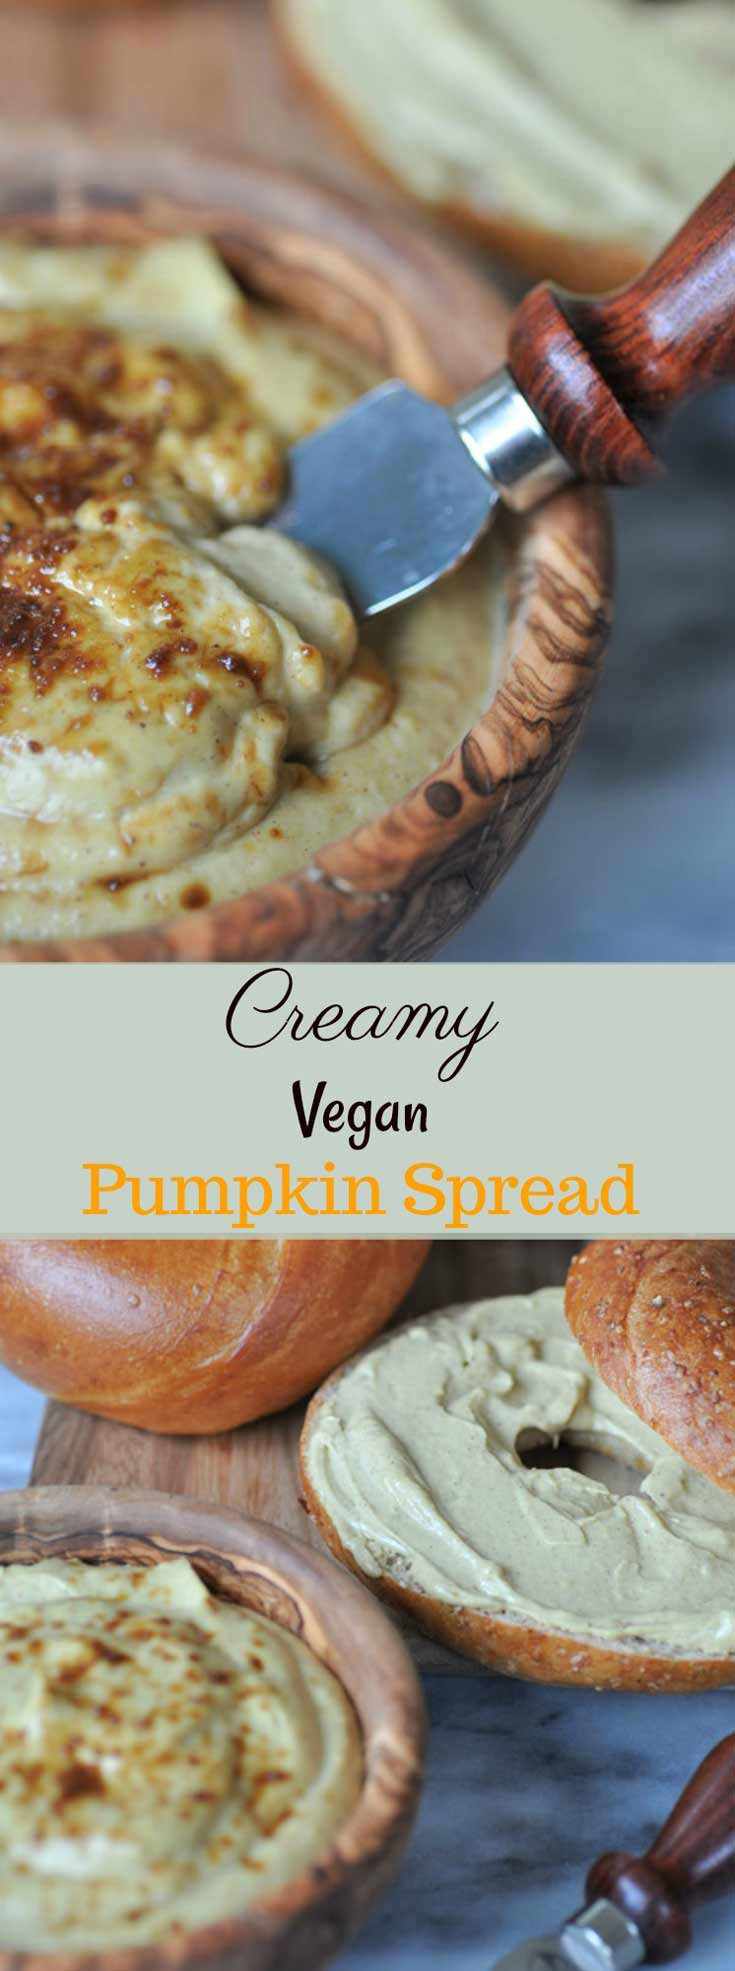 Creamy, dairy-free, vegan pumpkin spread. It's creamy and rich and so delicious. Perfect for breakfast.